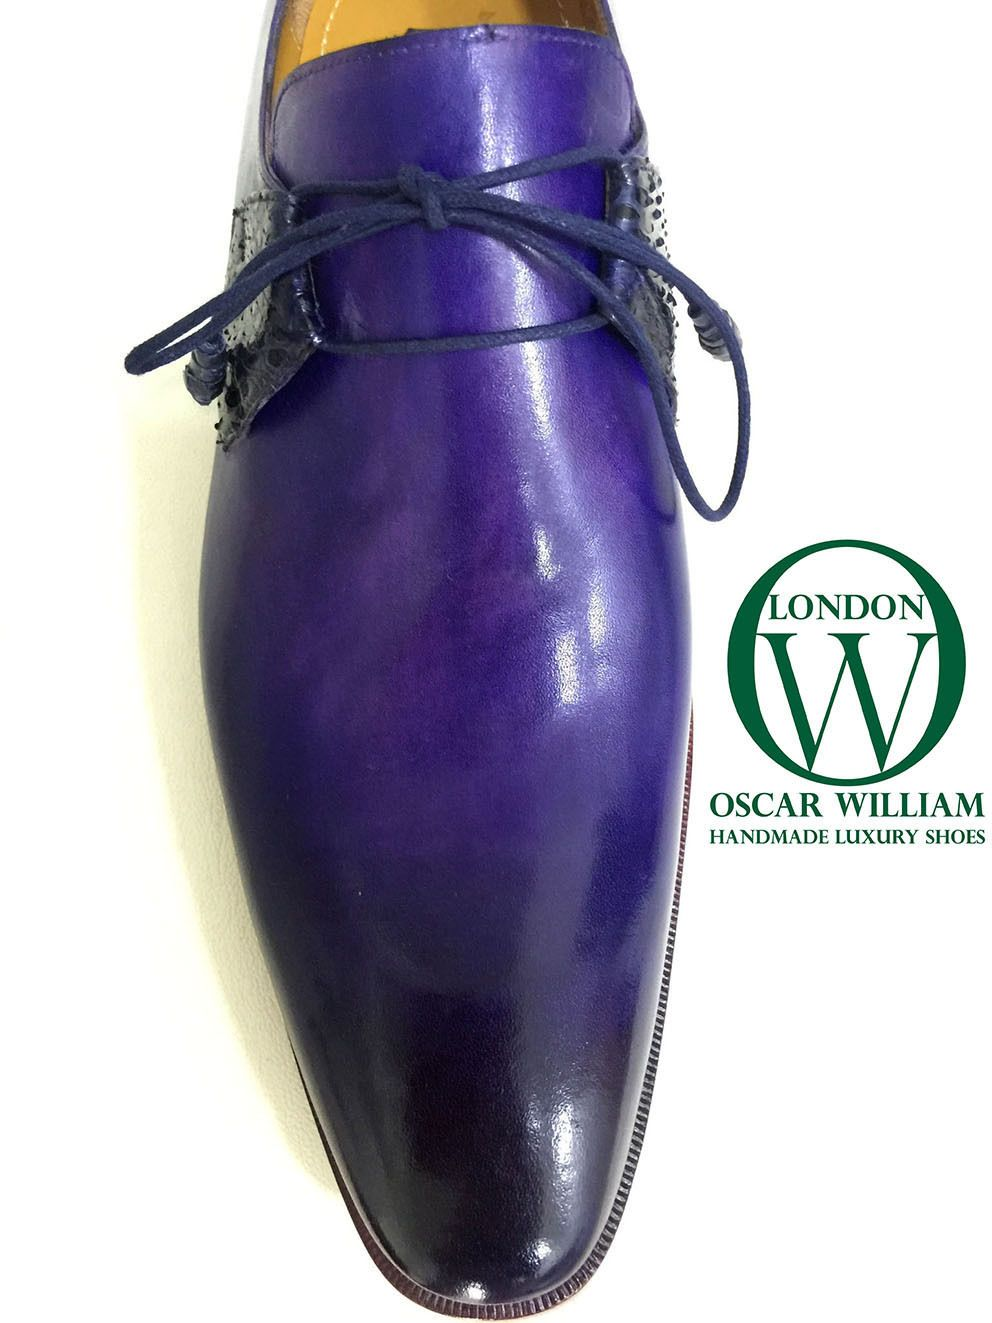 Oscar William Men English Handcrafted Luxury Shoes, With Leather Wrapped Lace